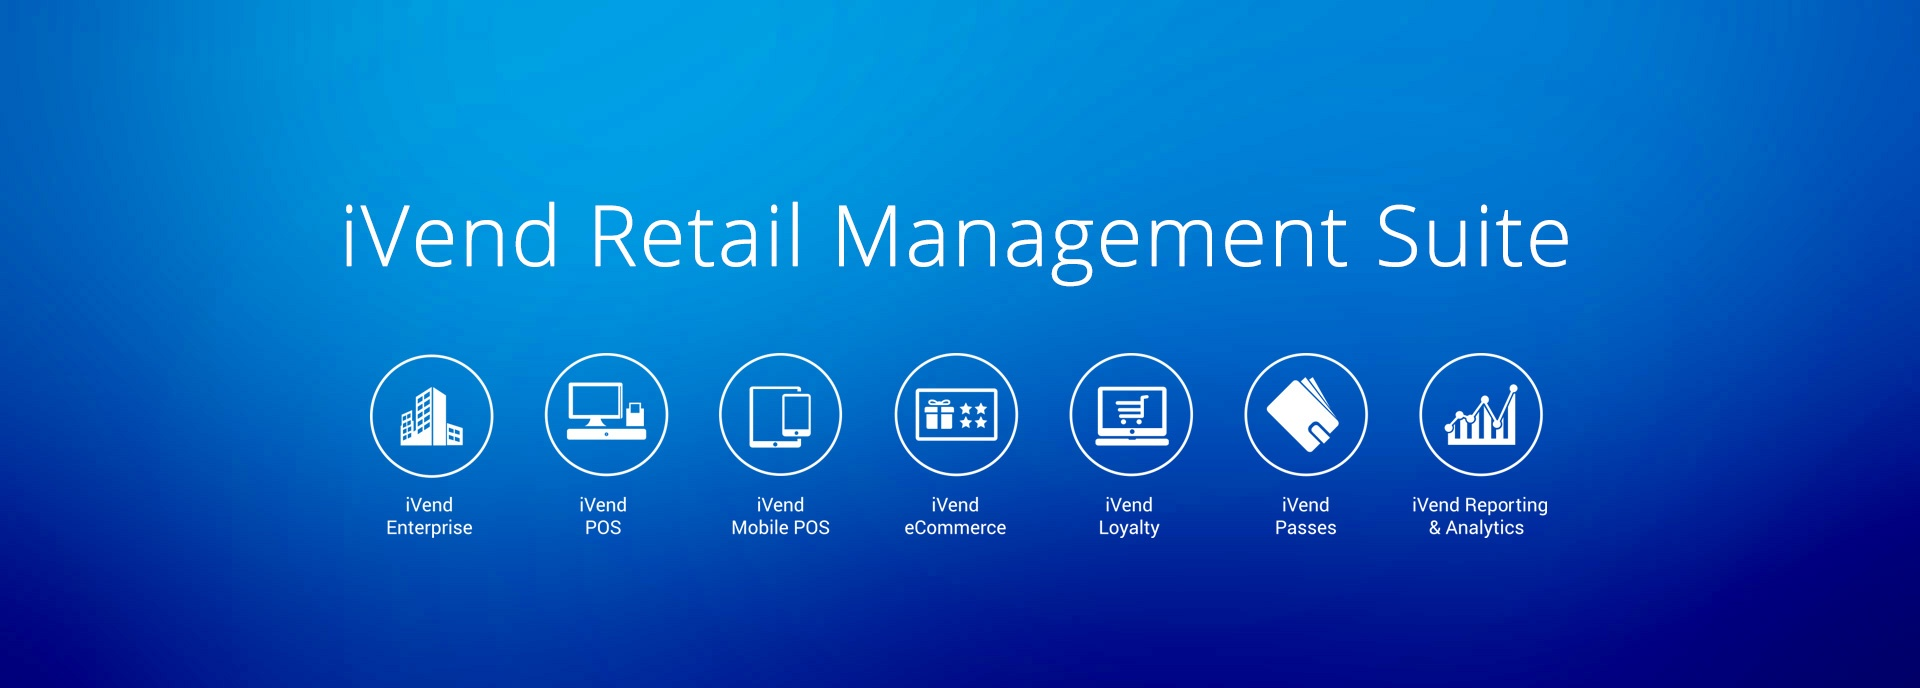 iVend Retail Management Suite